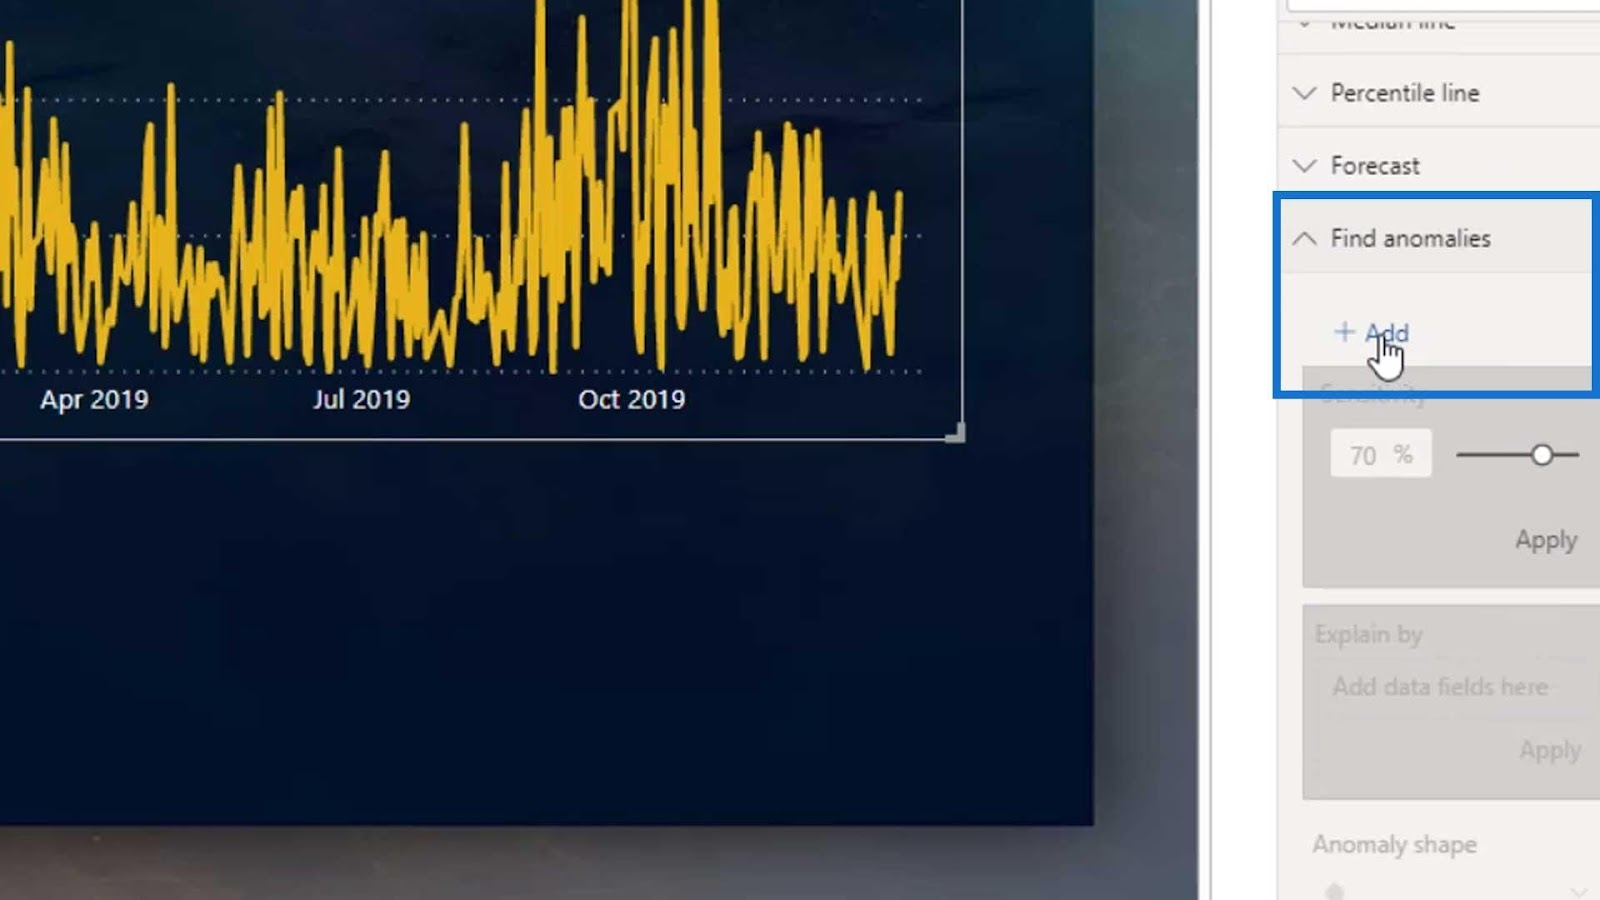 Anomaly Detection in Power BI